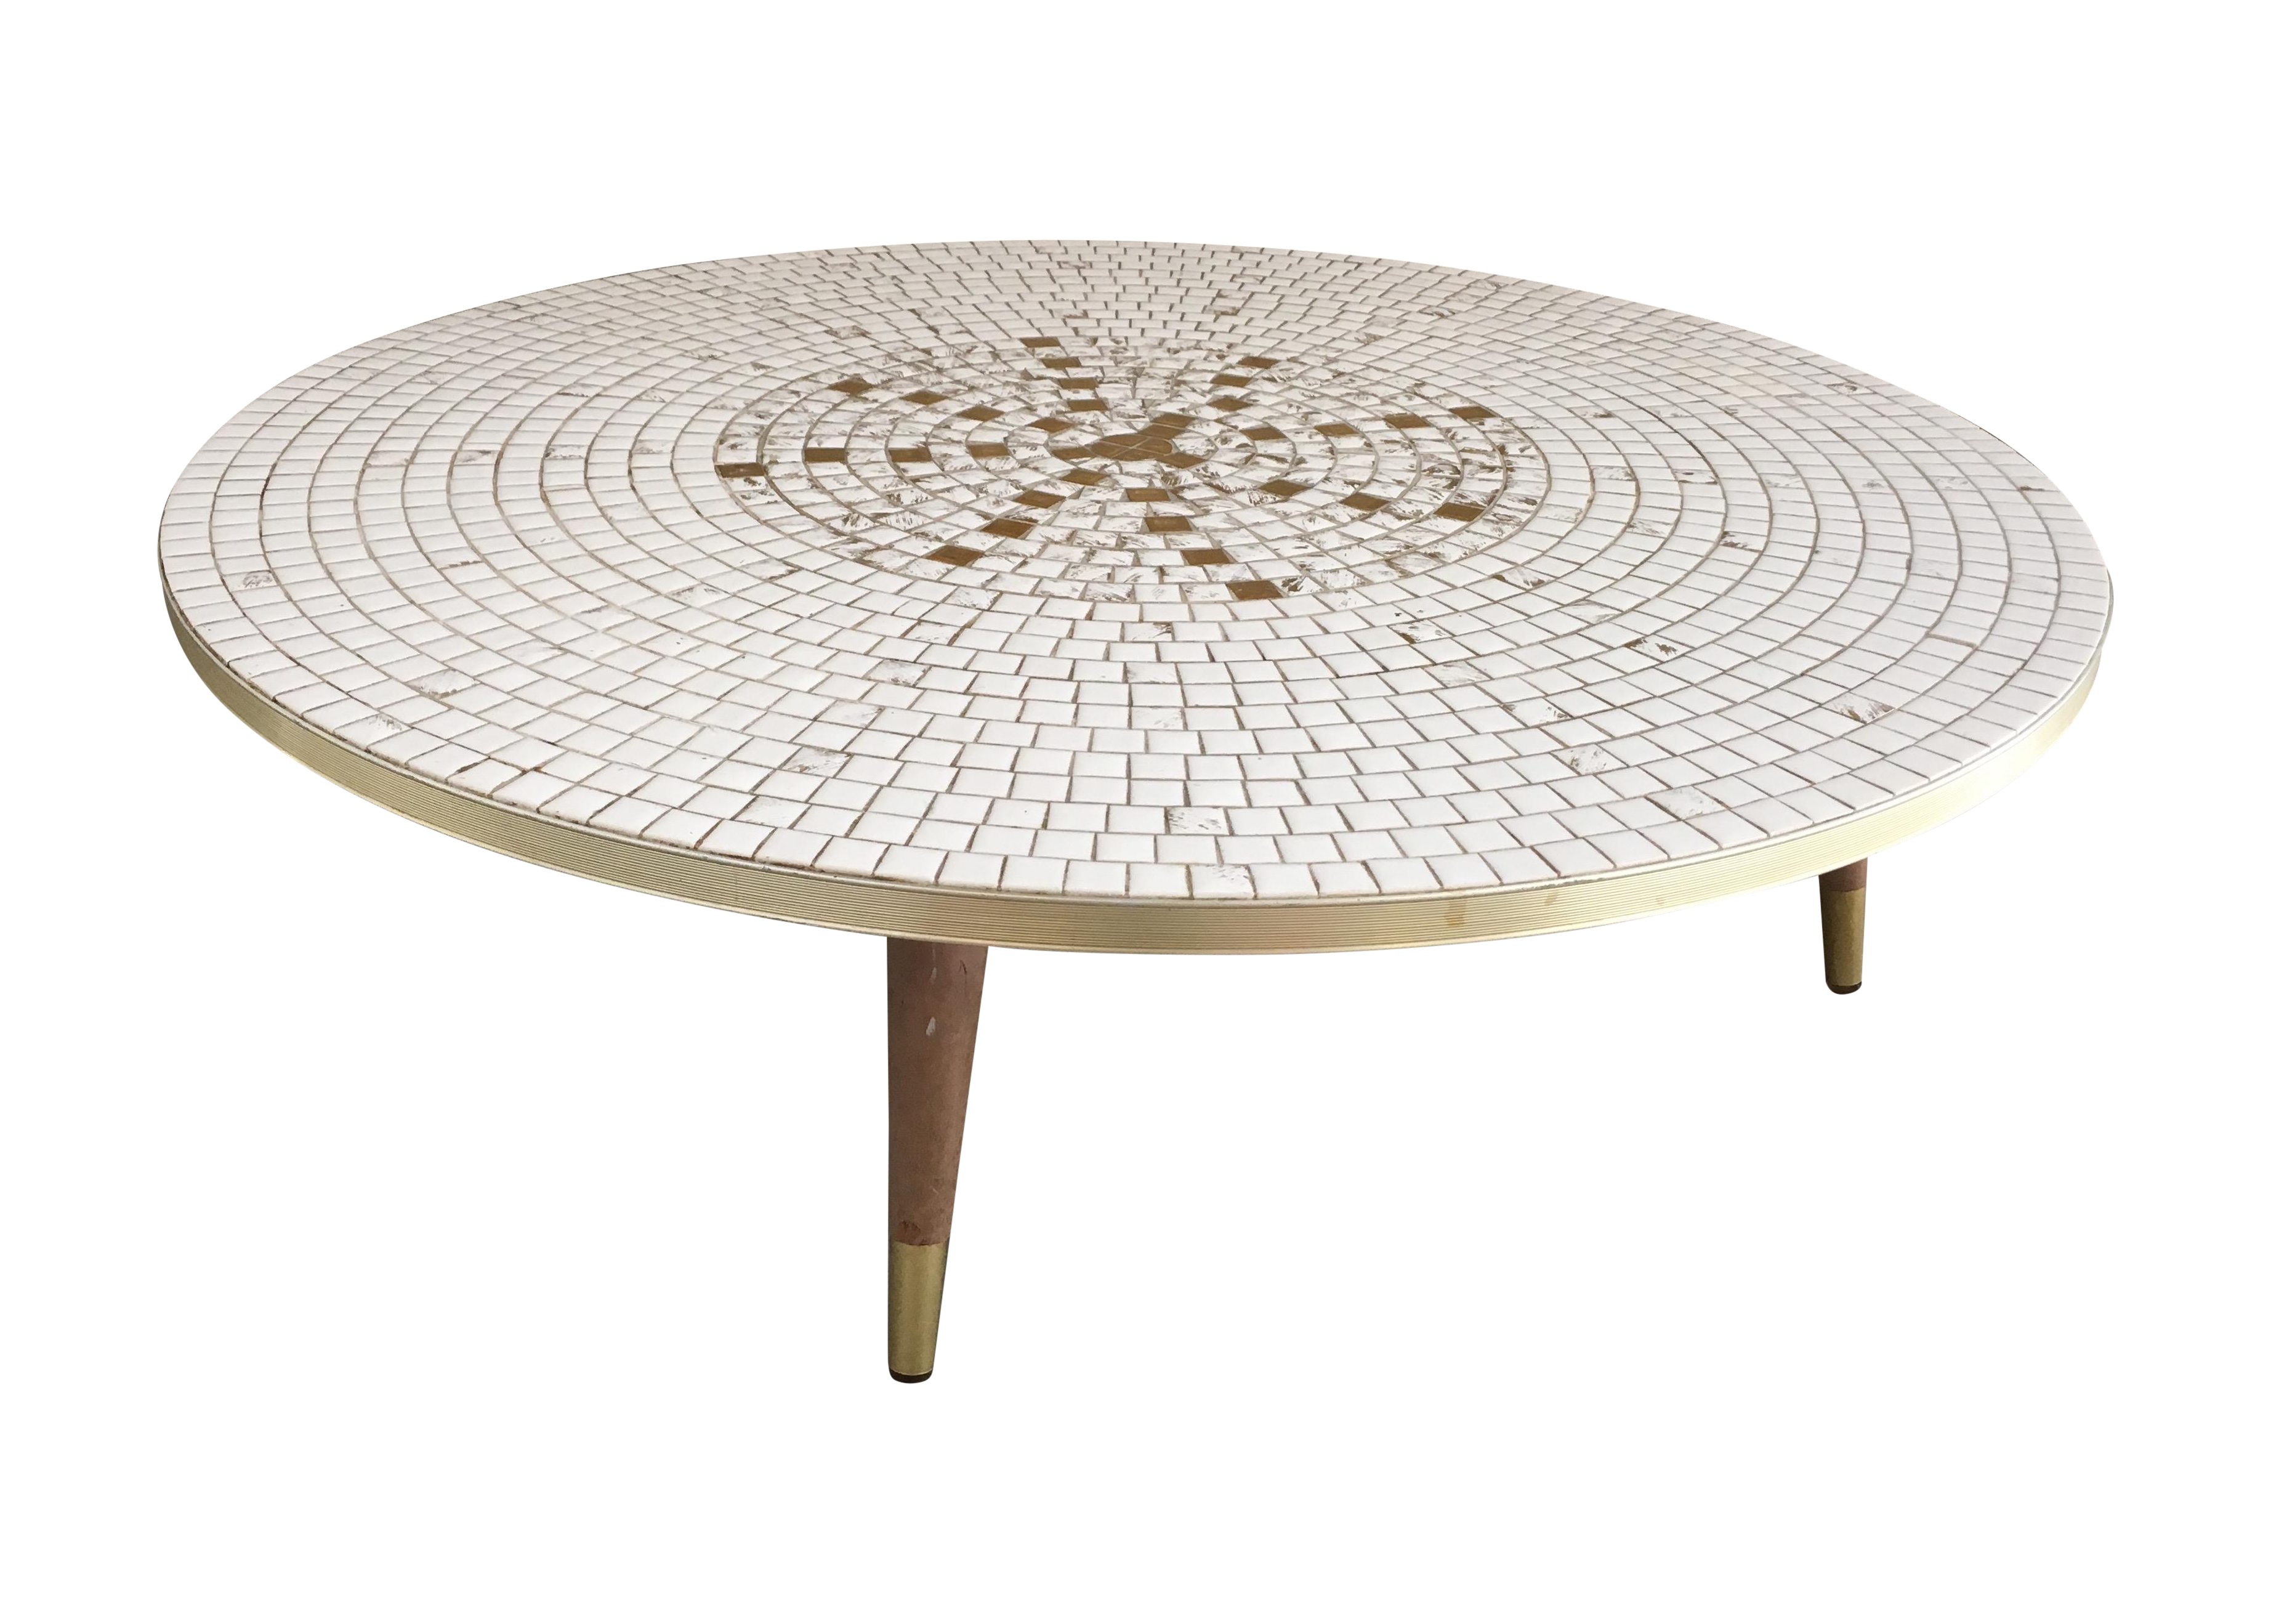 Mid Century Modern Round Coffee Table Table Ideas - Mid century modern boomerang coffee table